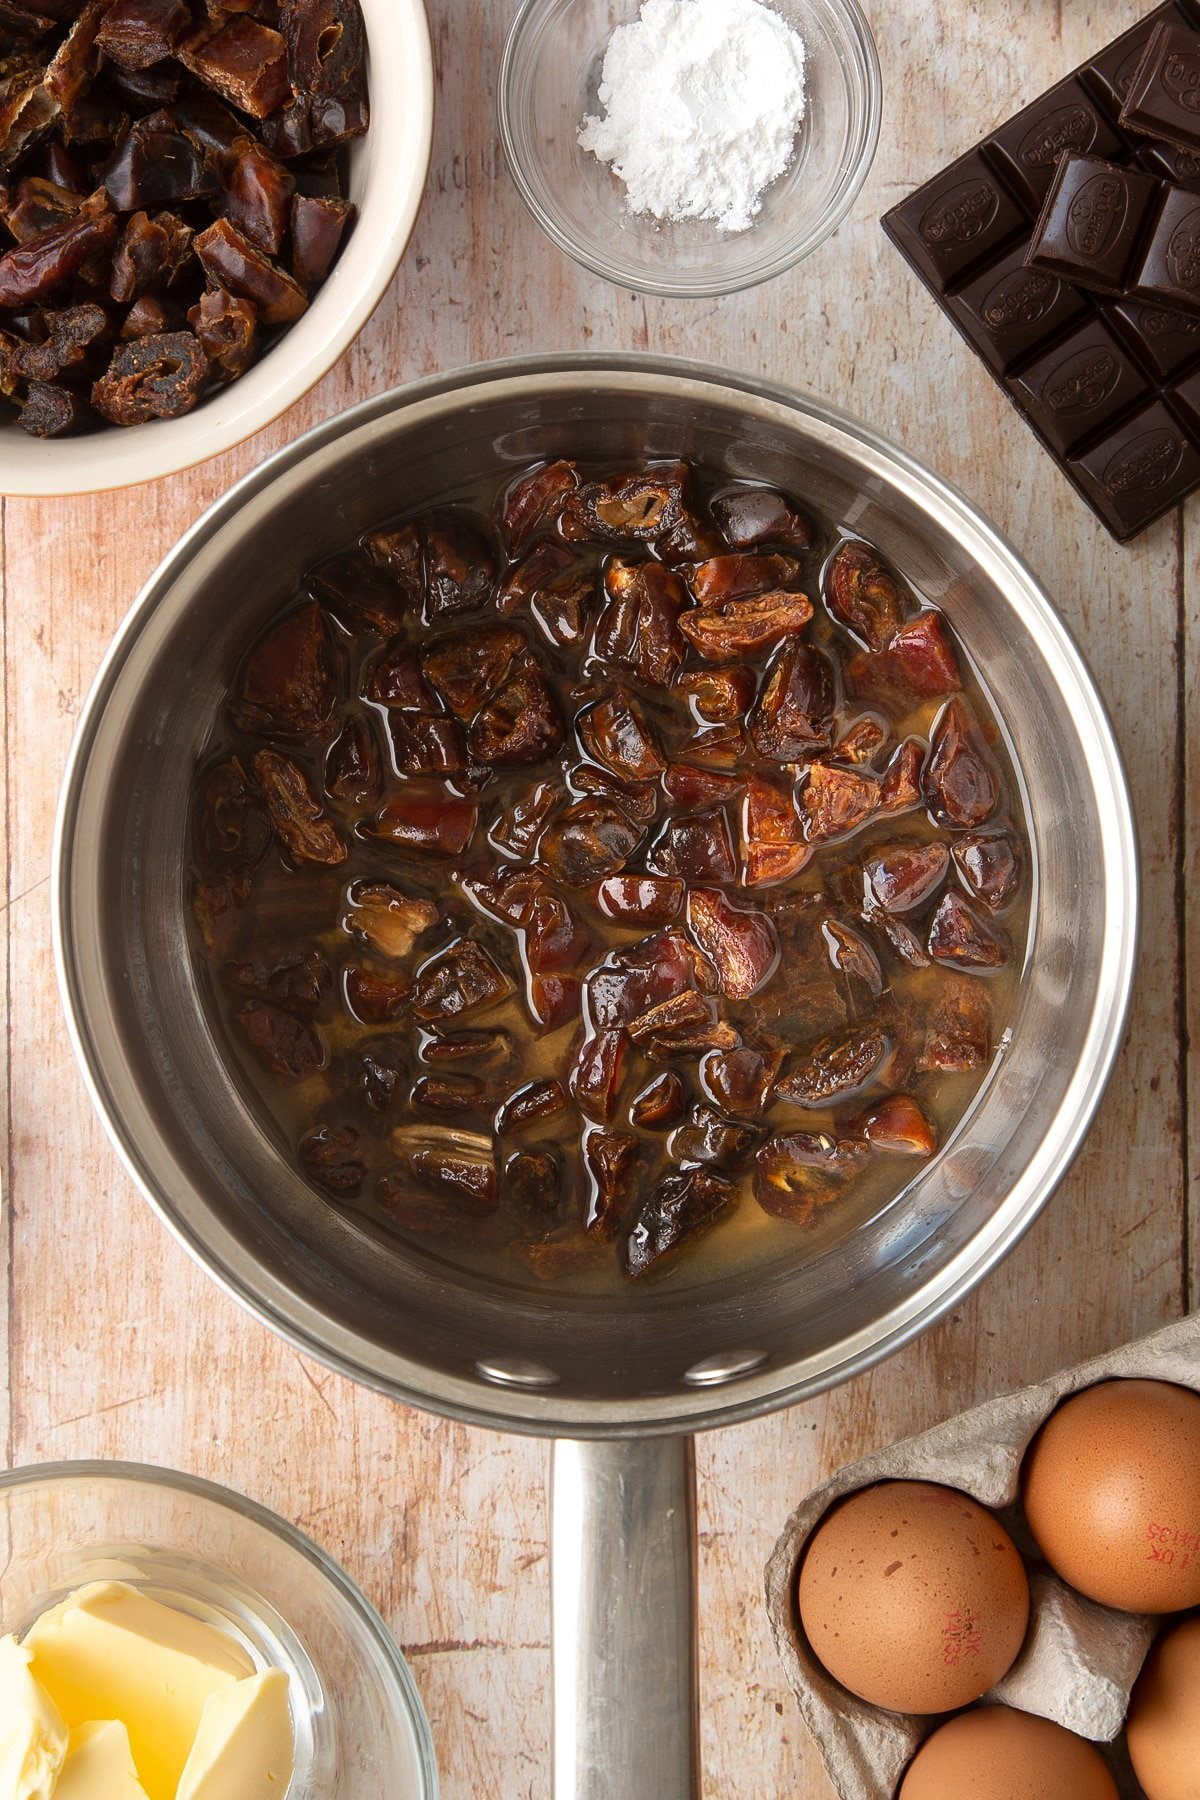 A sauce pan containing chopped dried dates and water. Ingredients to make whole grain brownies surround the pan.